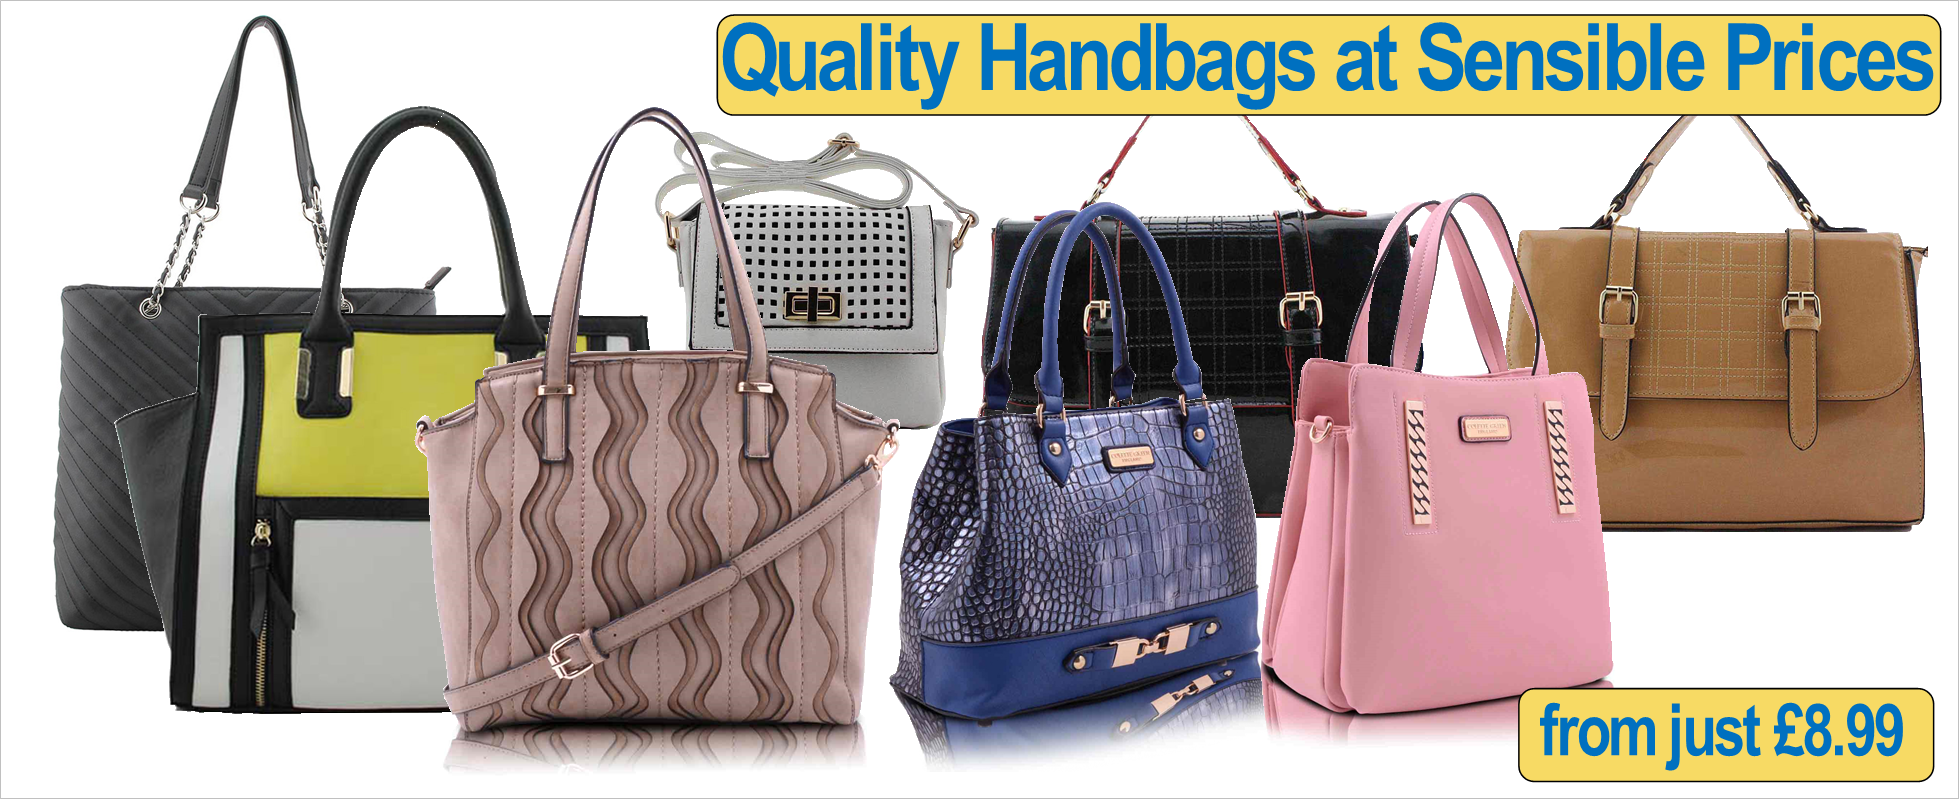 Online Deals for Handbags & Purses